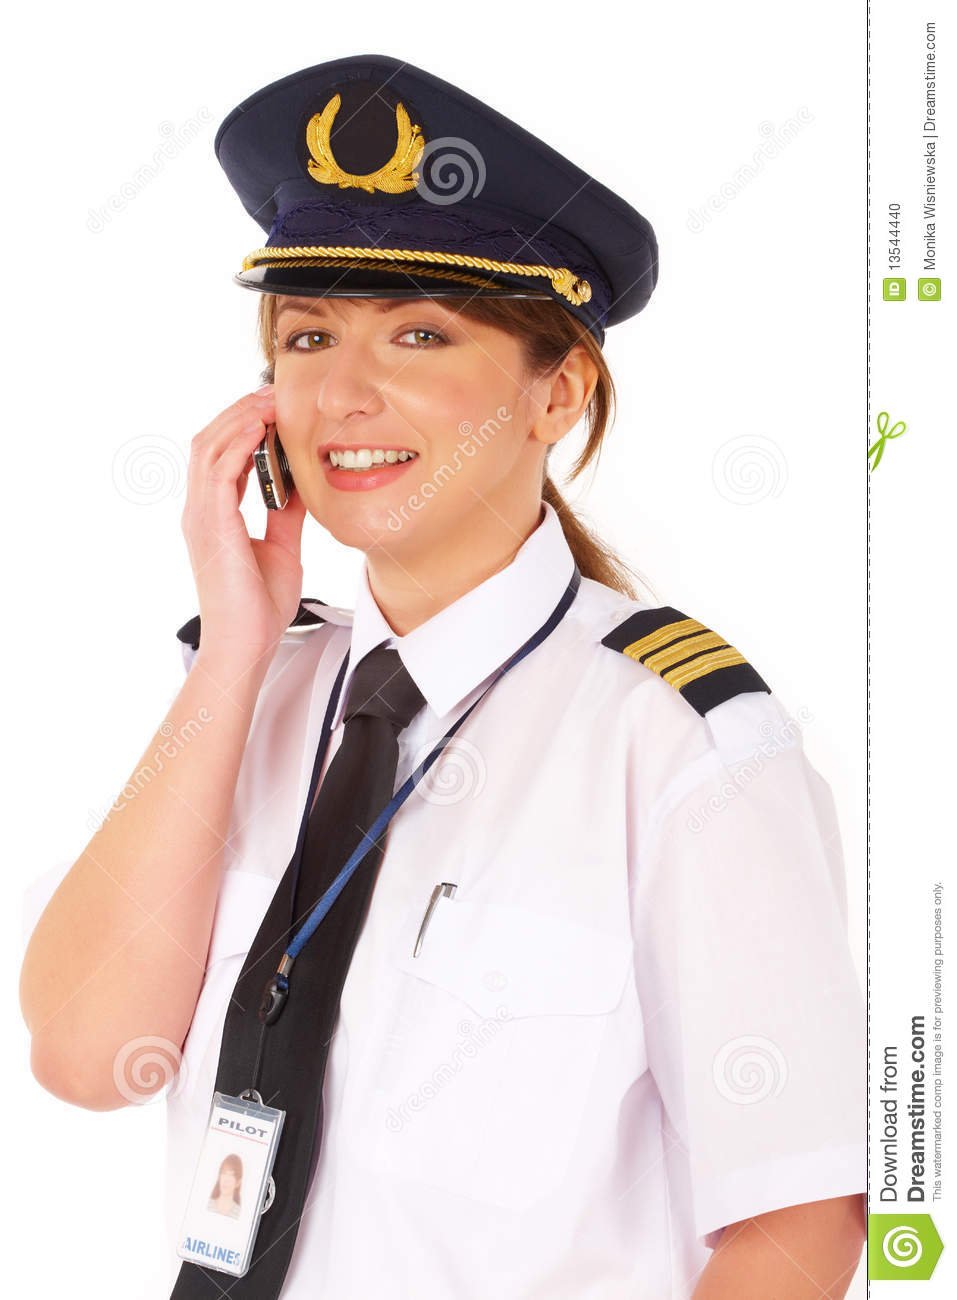 Airline pilot stock photo  Image of female, isolated - 13544440